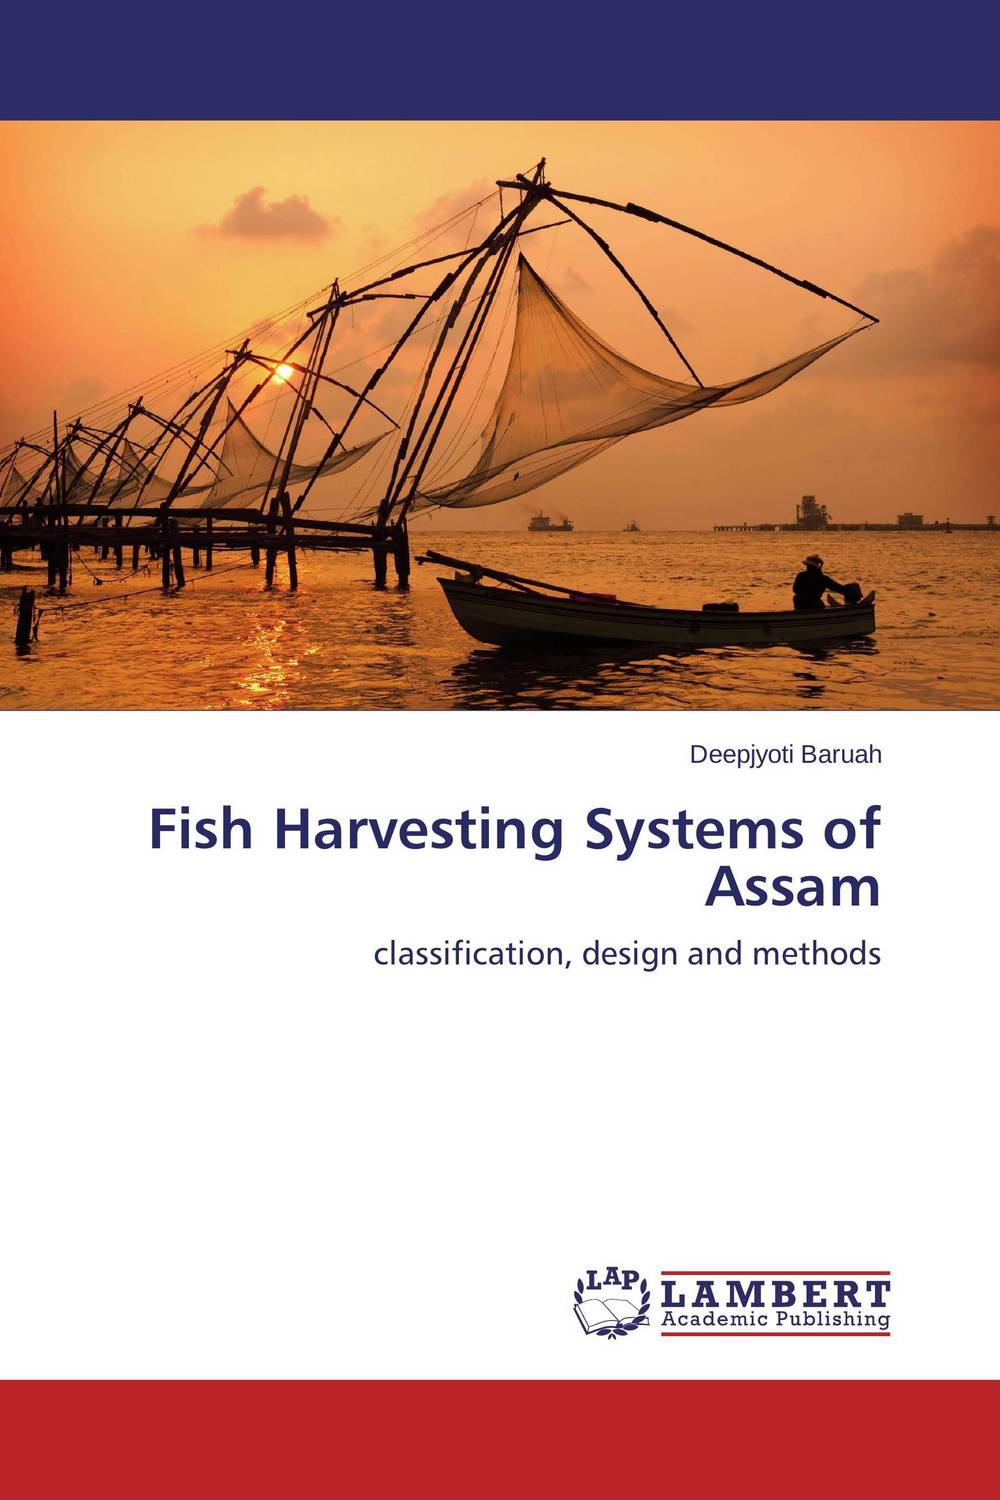 Fish Harvesting Systems of Assam belousov a security features of banknotes and other documents methods of authentication manual денежные билеты бланки ценных бумаг и документов